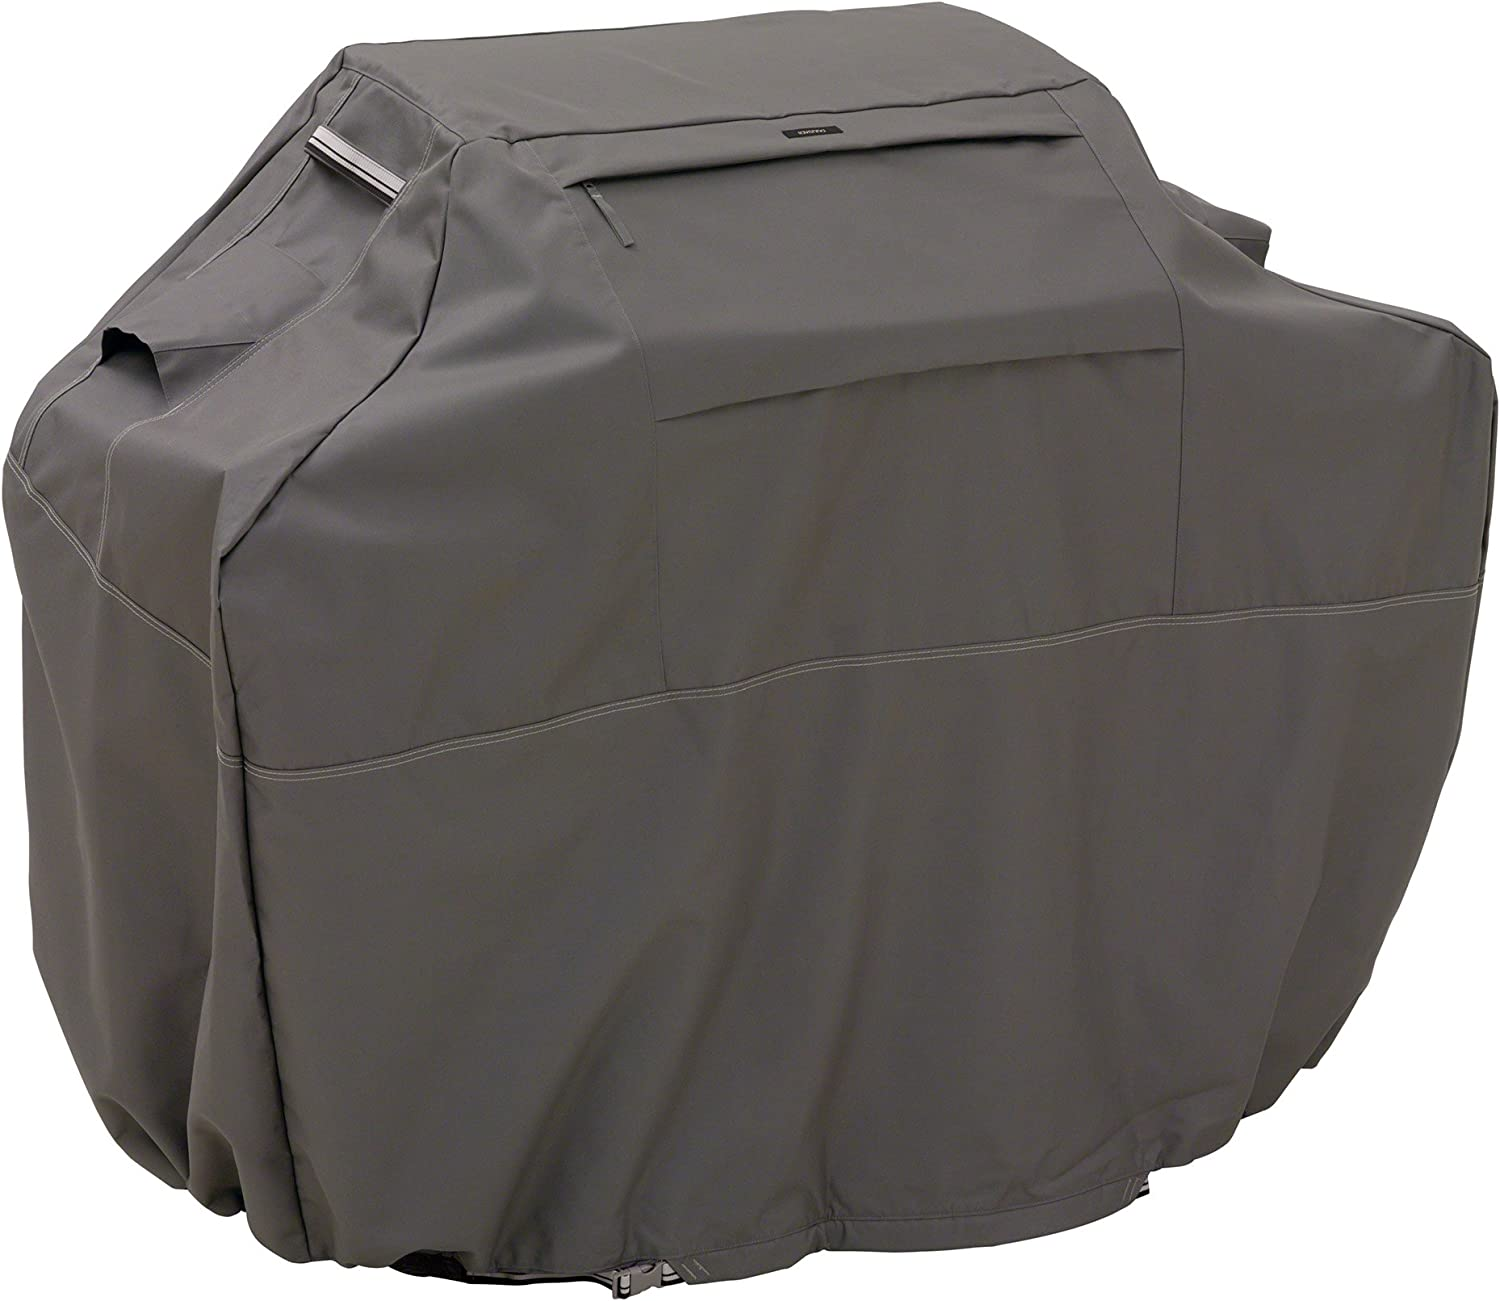 Classic Accessories Ravenna Grill Cover For Weber Genesis